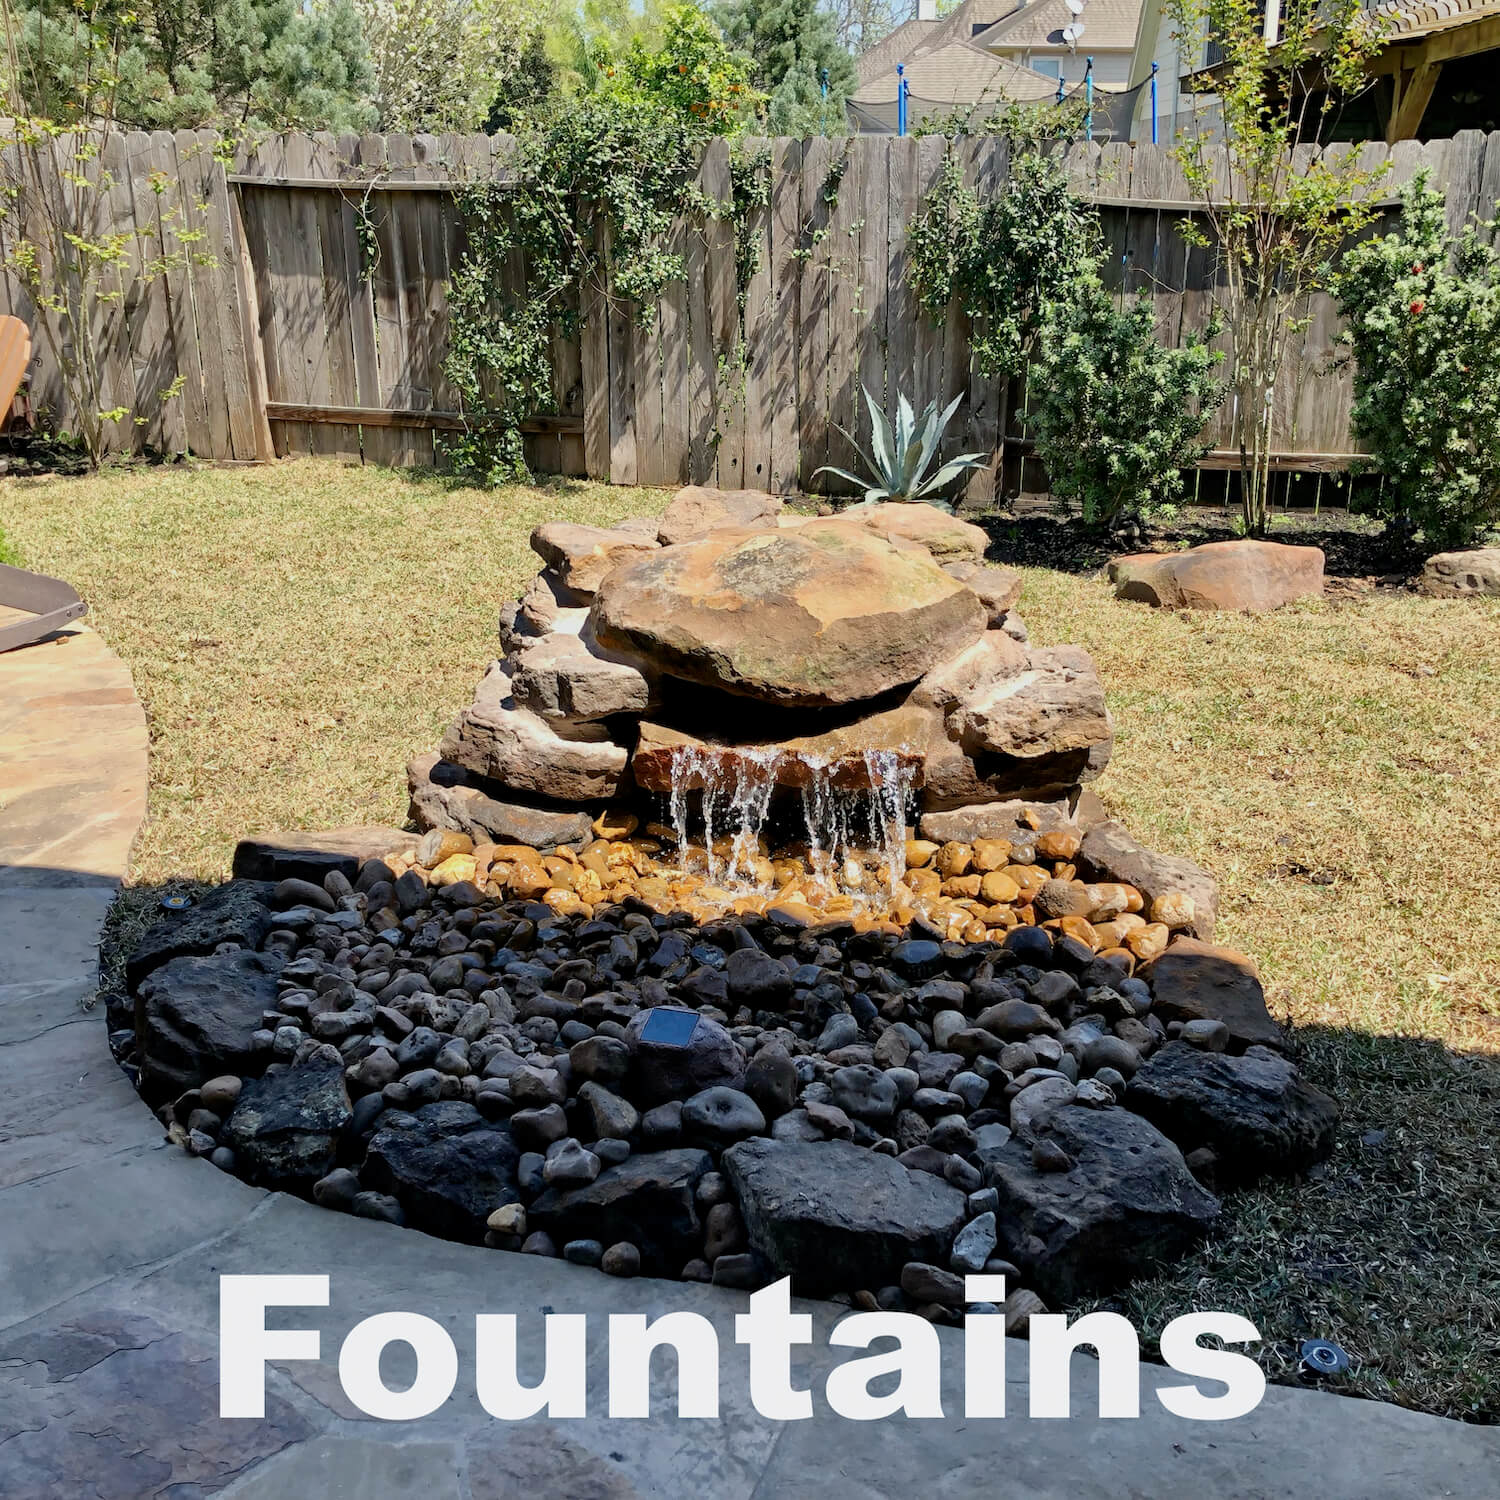 fountains backyard landscaping houston 77042